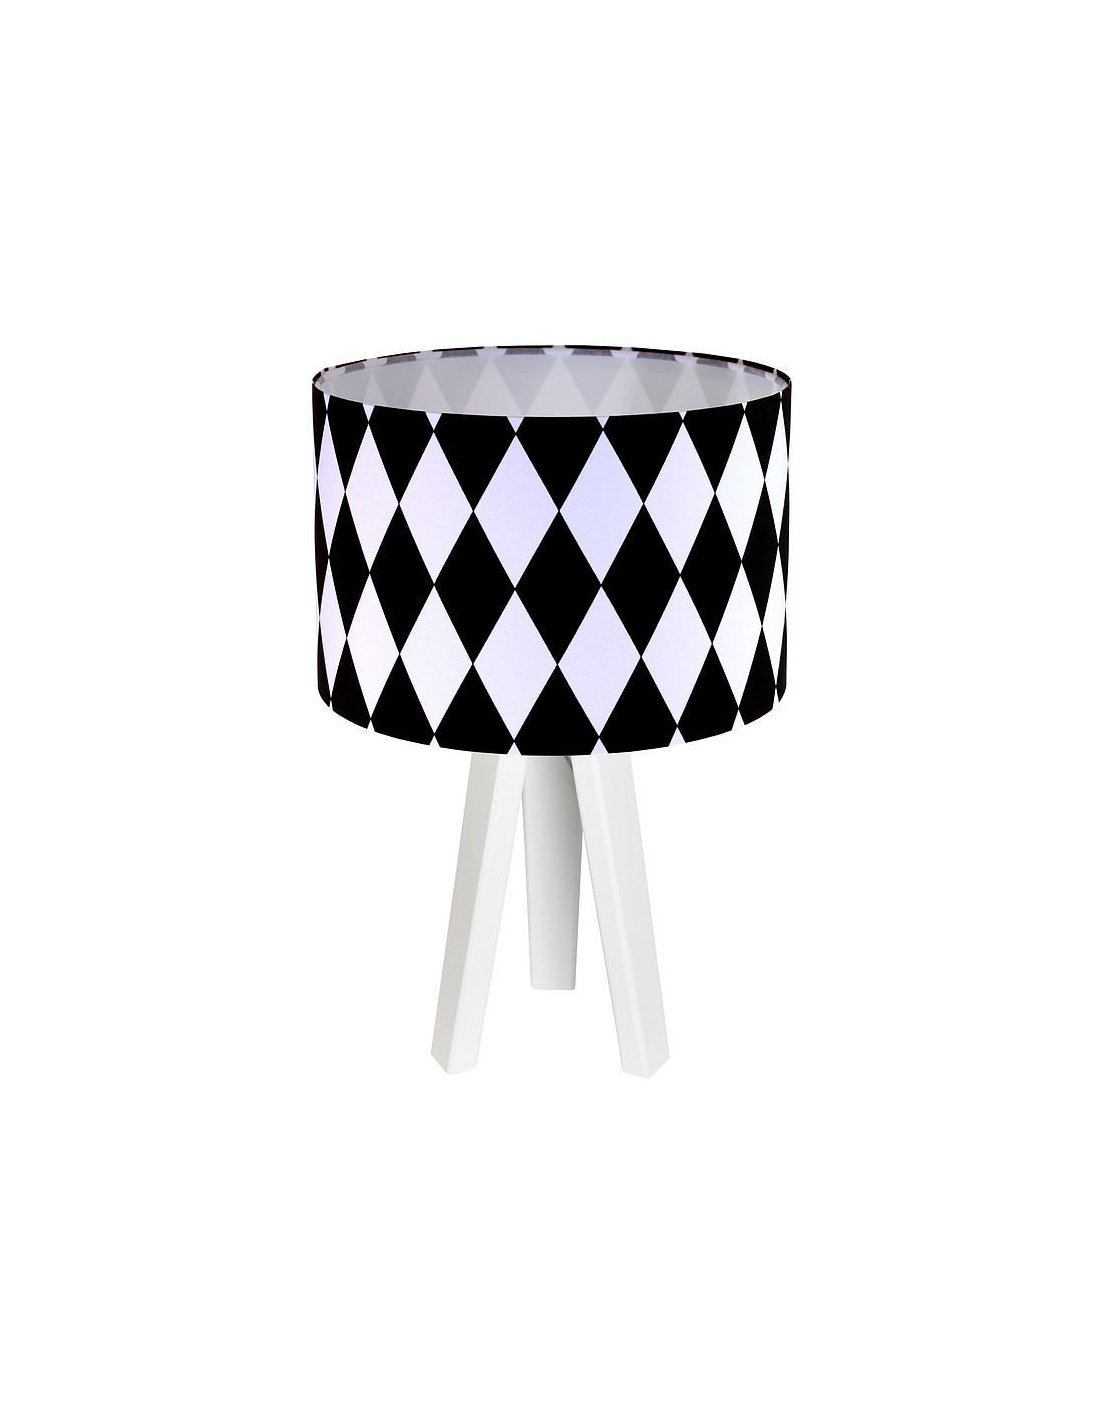 De Collection Chevet Koncept Et Lampe Noir Blanc ClassicBps ARjL54